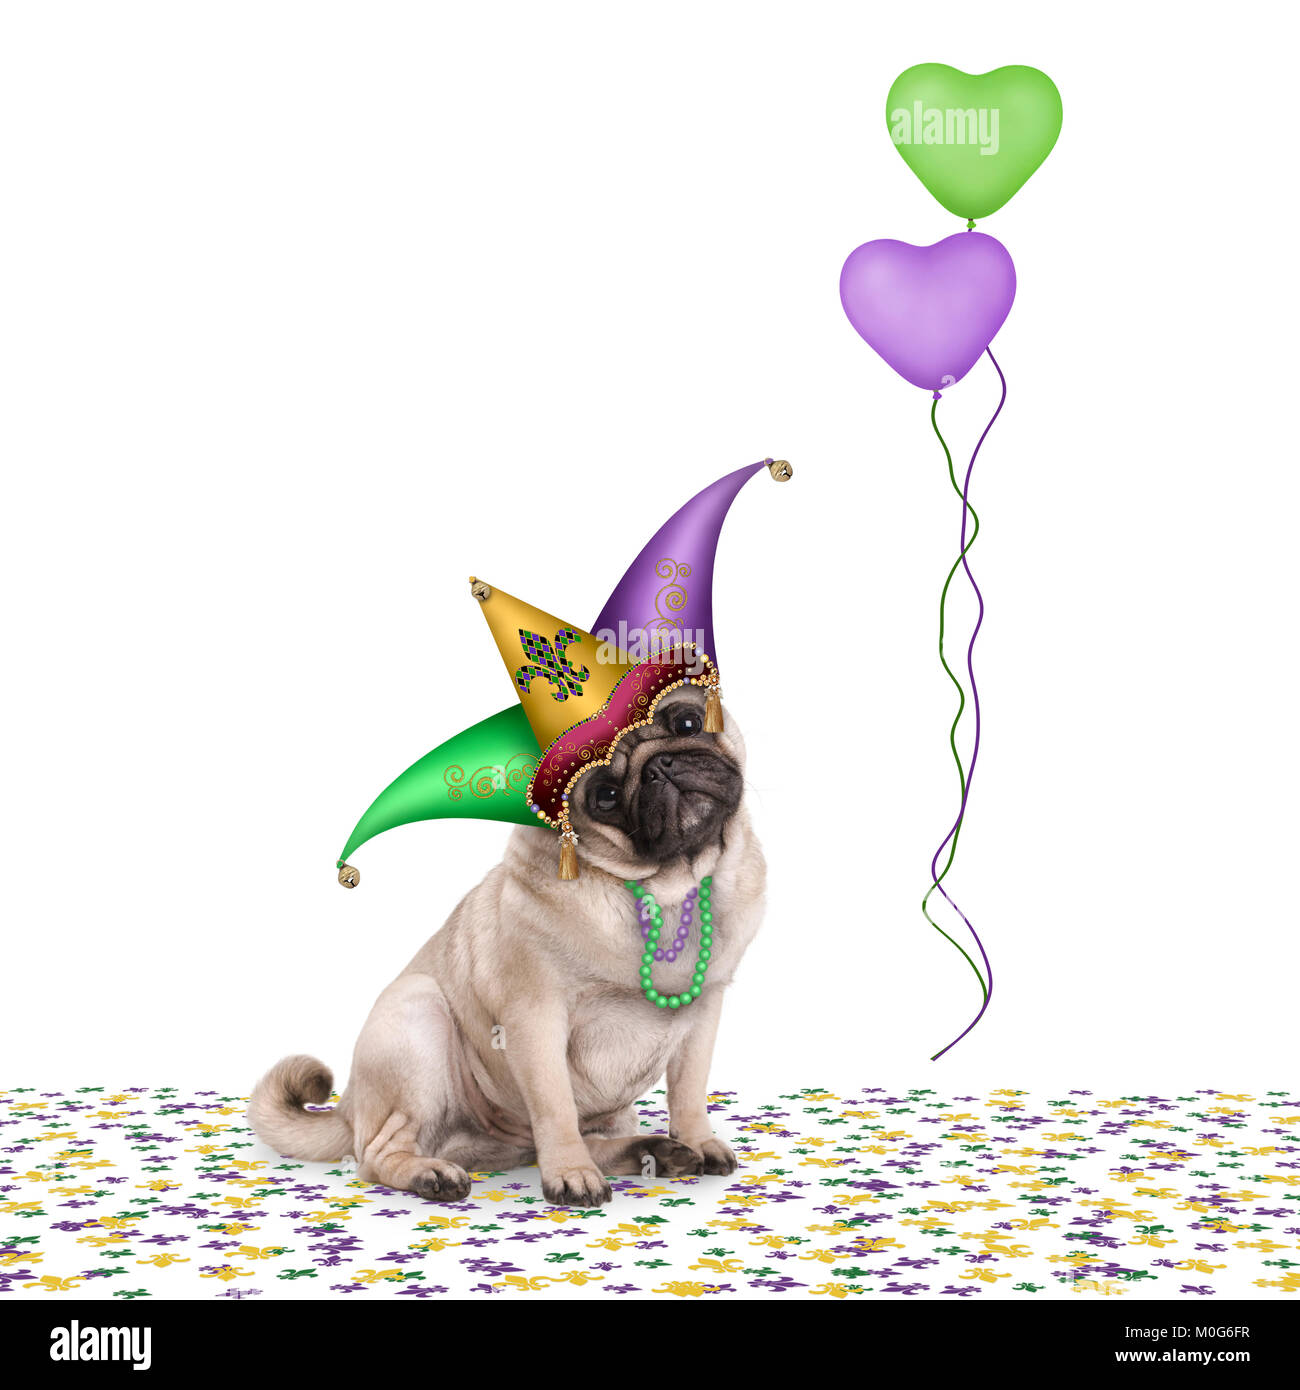 cute Mardi gras carnival pug puppy dog sitting down on confetti with harlequin jester hat and balloons, isolated - Stock Image